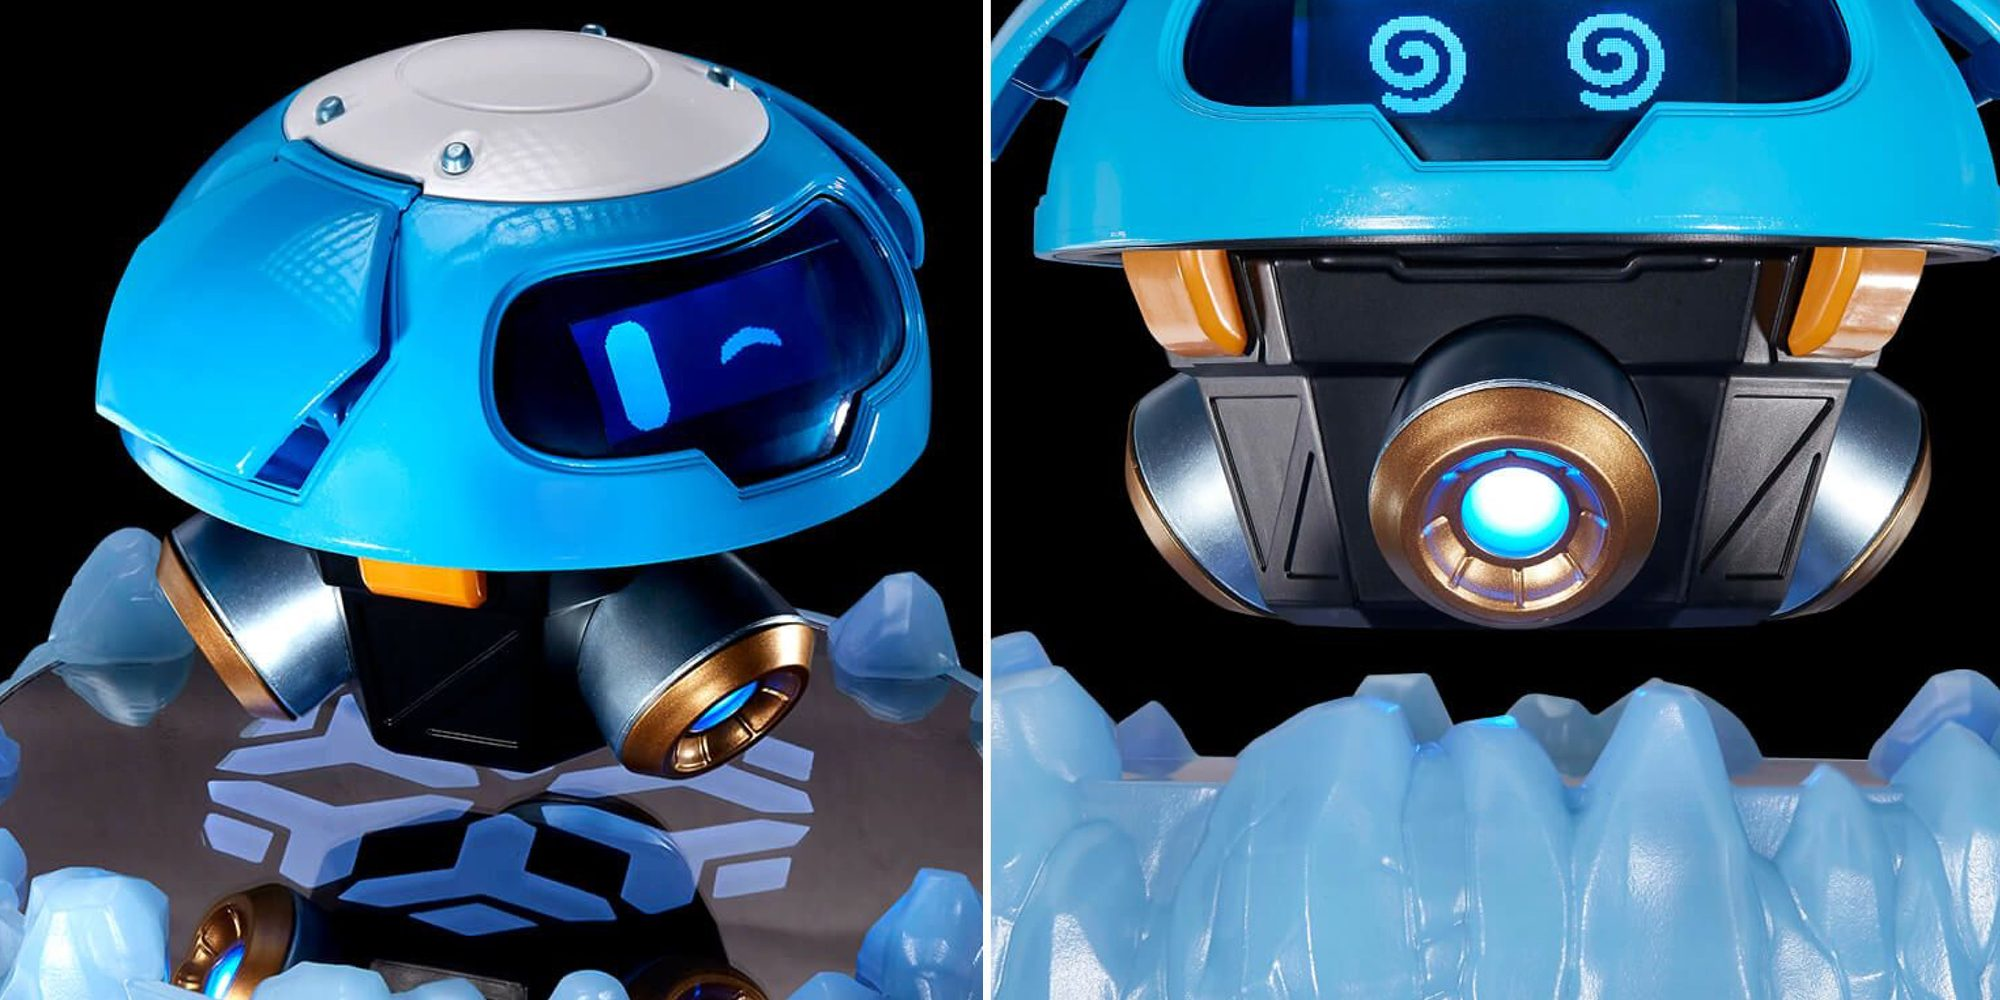 Blizzard has released a robot toy Snow Overwatch